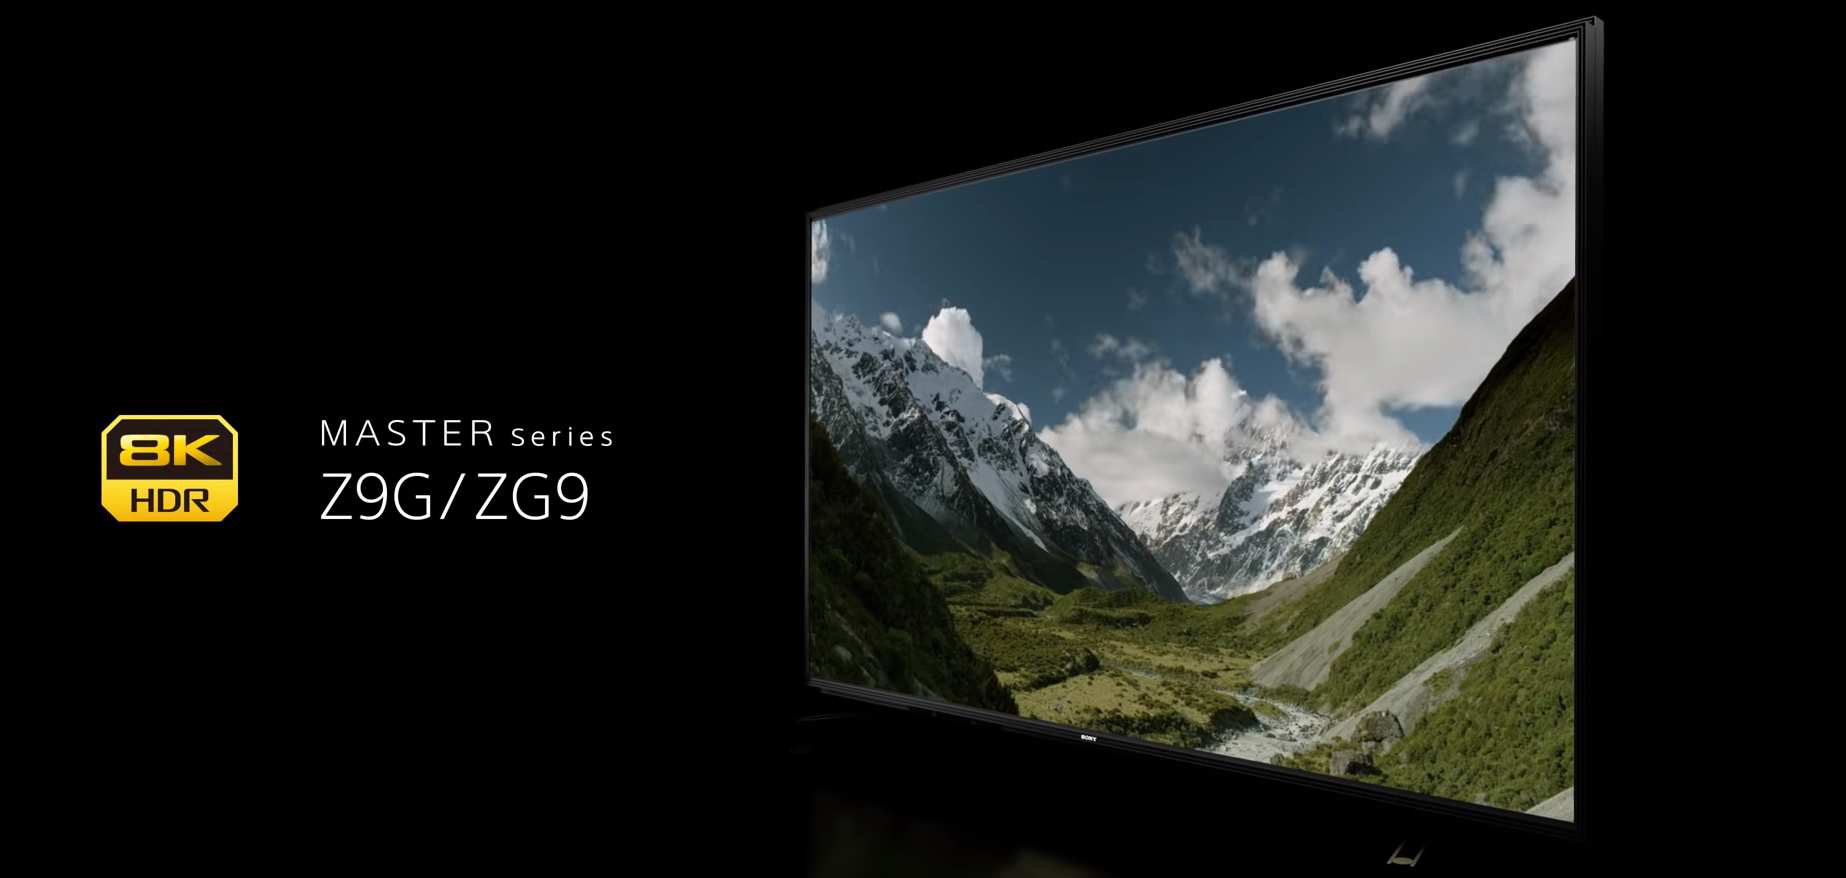 Sony Z9G Master Series 8K HDR TV Review - A Feature-rich